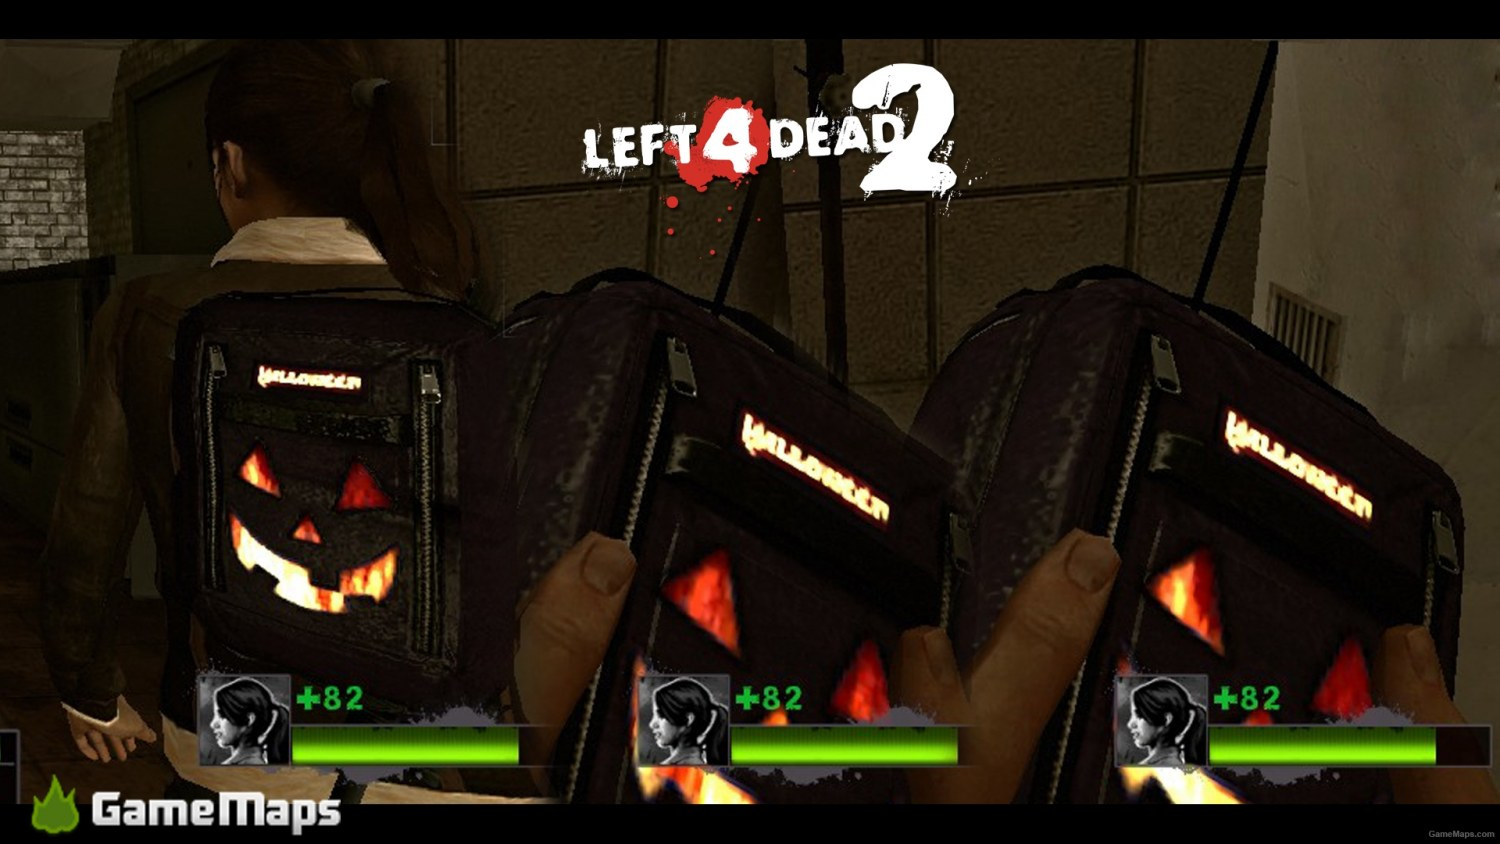 Free Mods and Skins - Left 4 Dead 2 - GameMaps